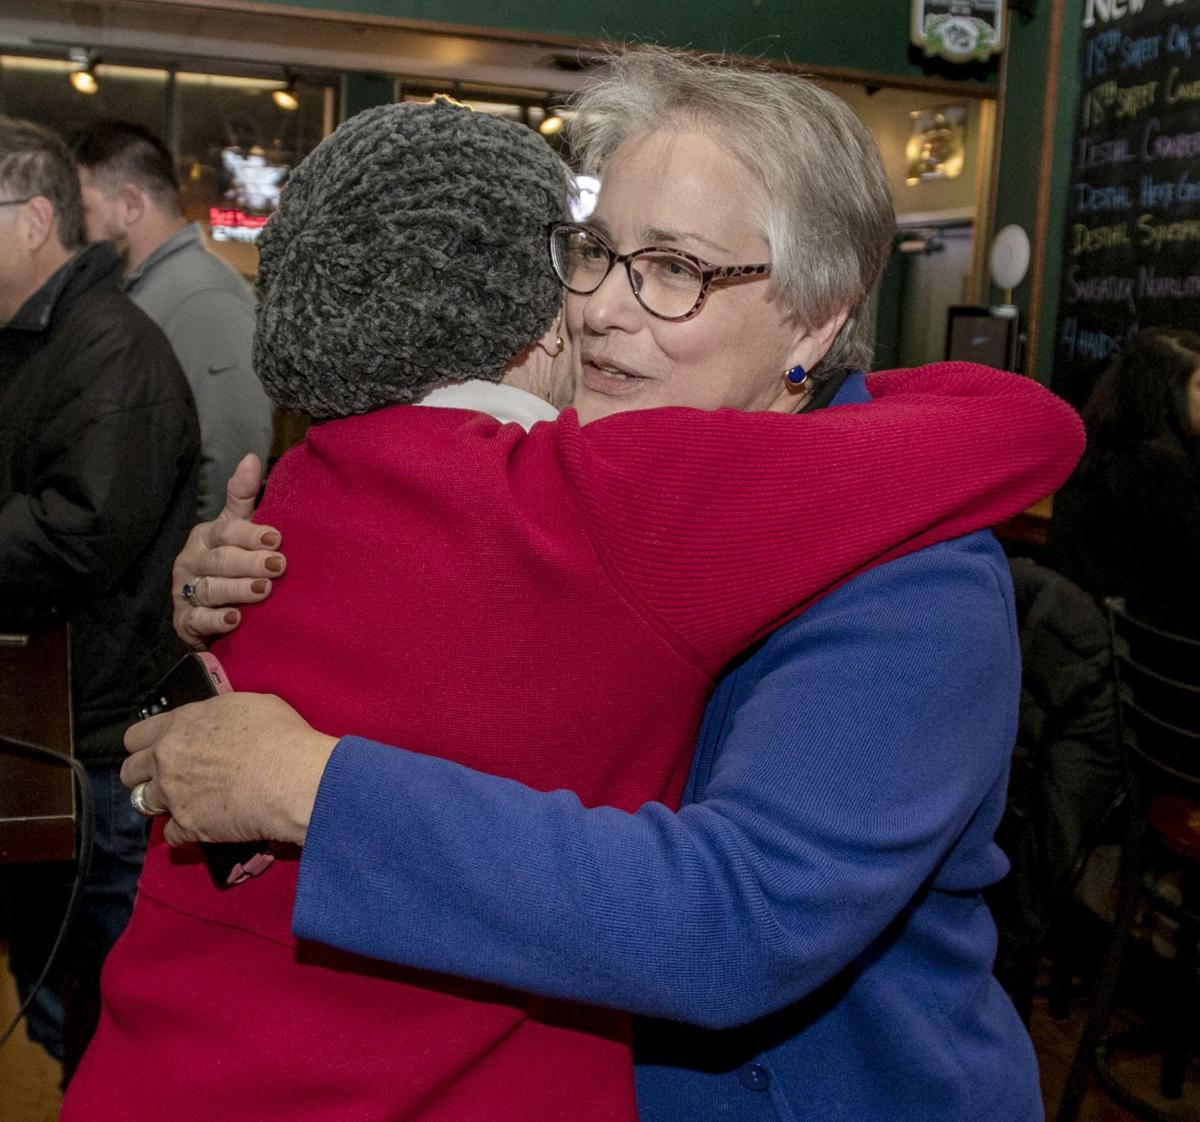 Political newcomer Kloeppel ready to get to work as first county executive